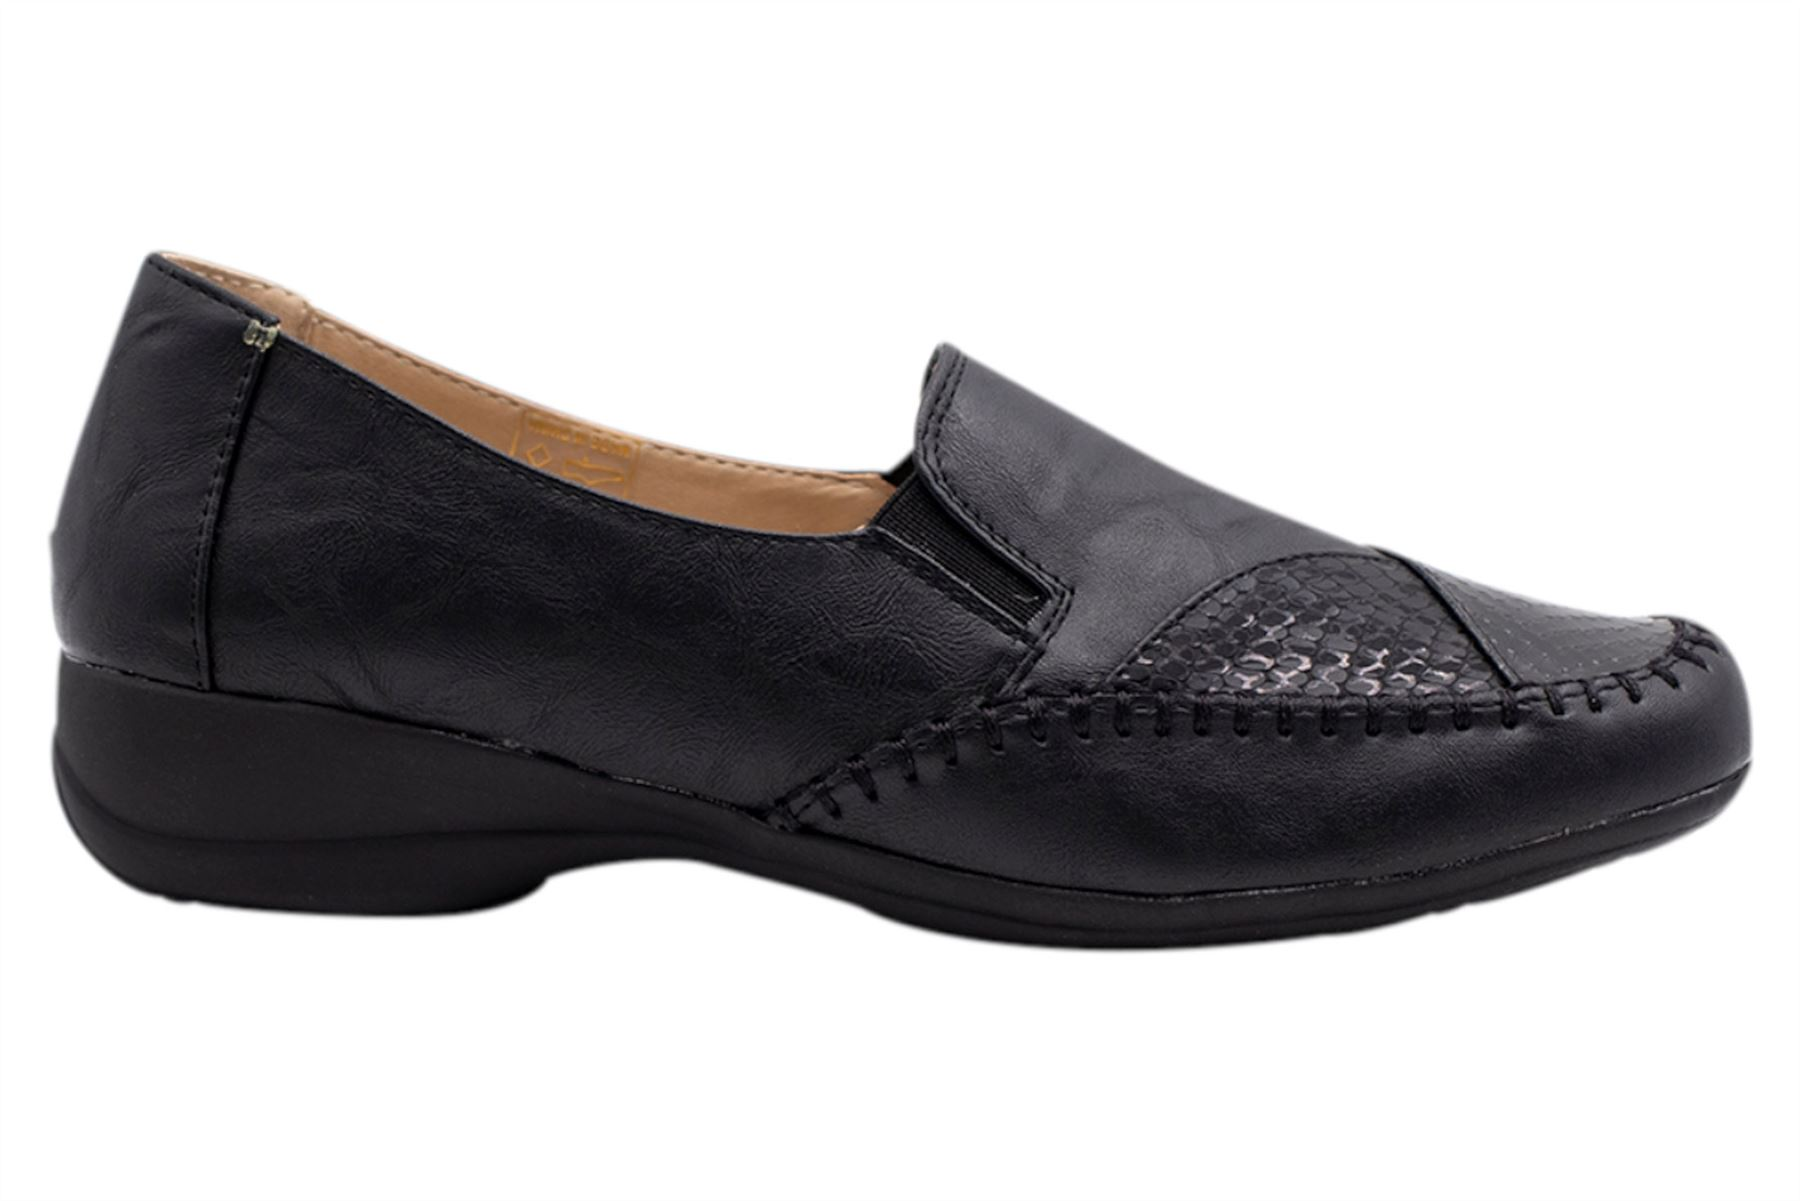 Womens-Flat-Shoes-Ladies-Pumps-Office-Work-Casual-Slip-On-Loafer-Size thumbnail 9